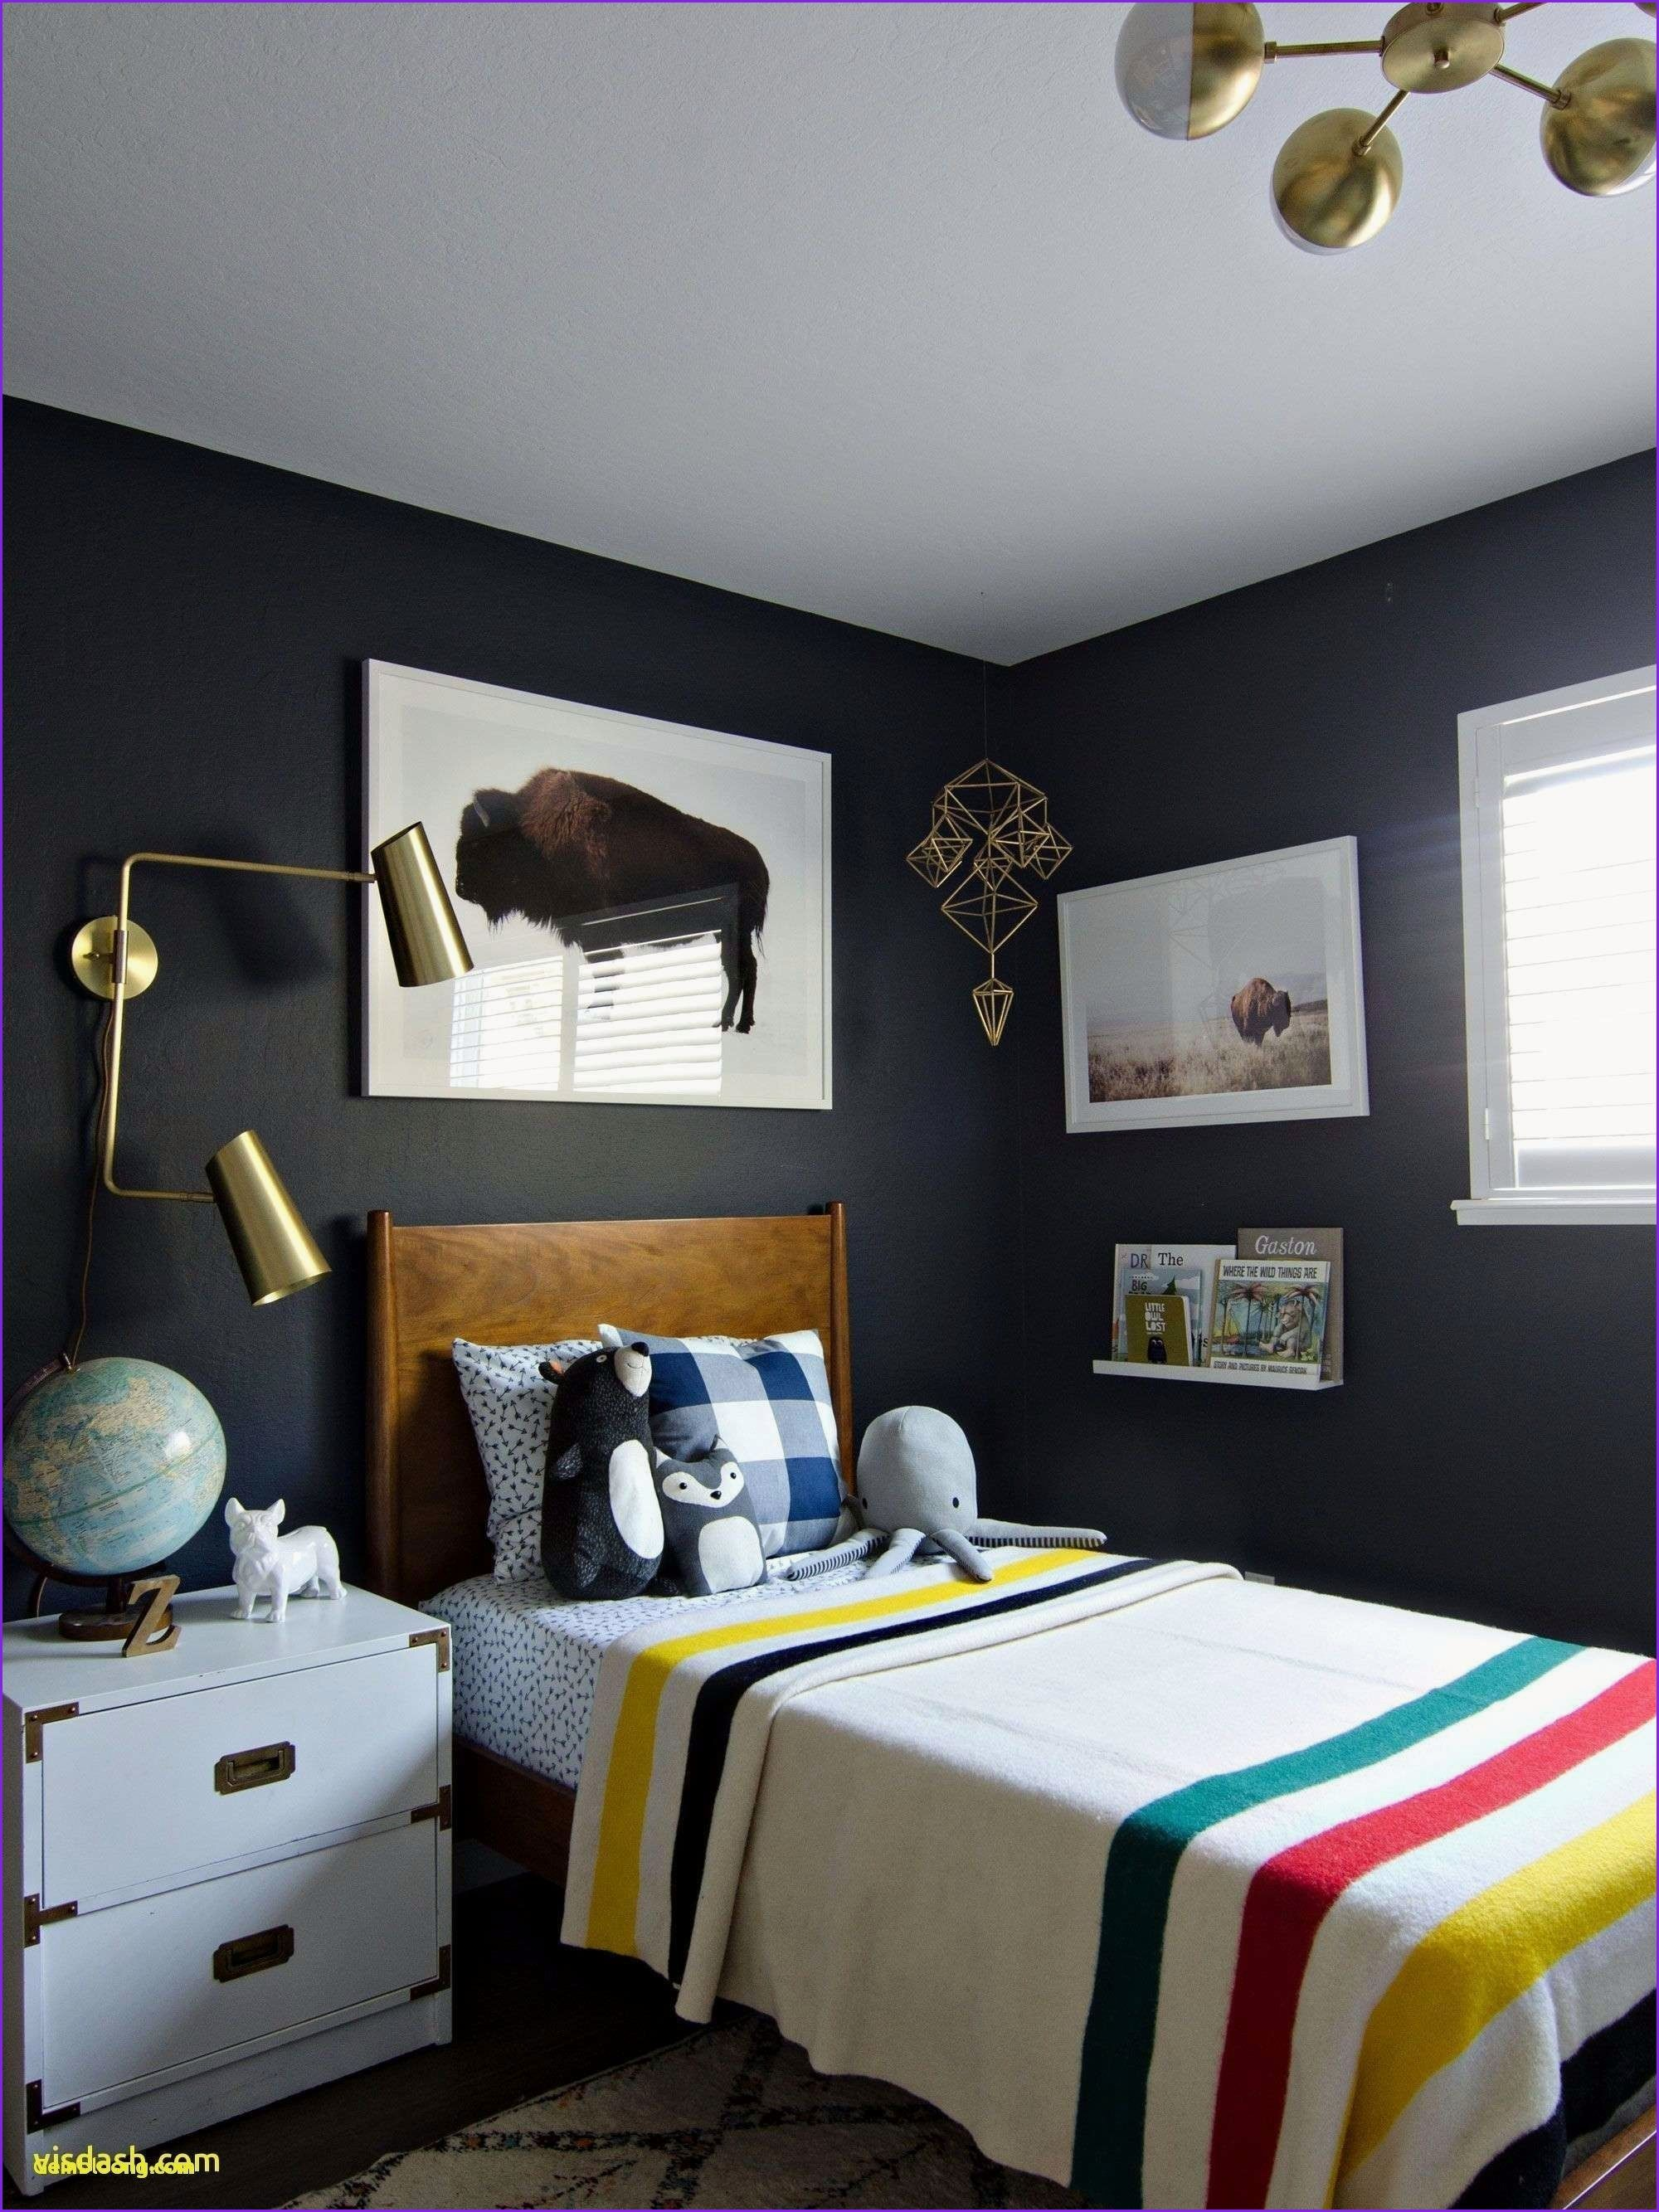 Awesome Tiny House Bed Ideas  Small bedroom decor, Remodel